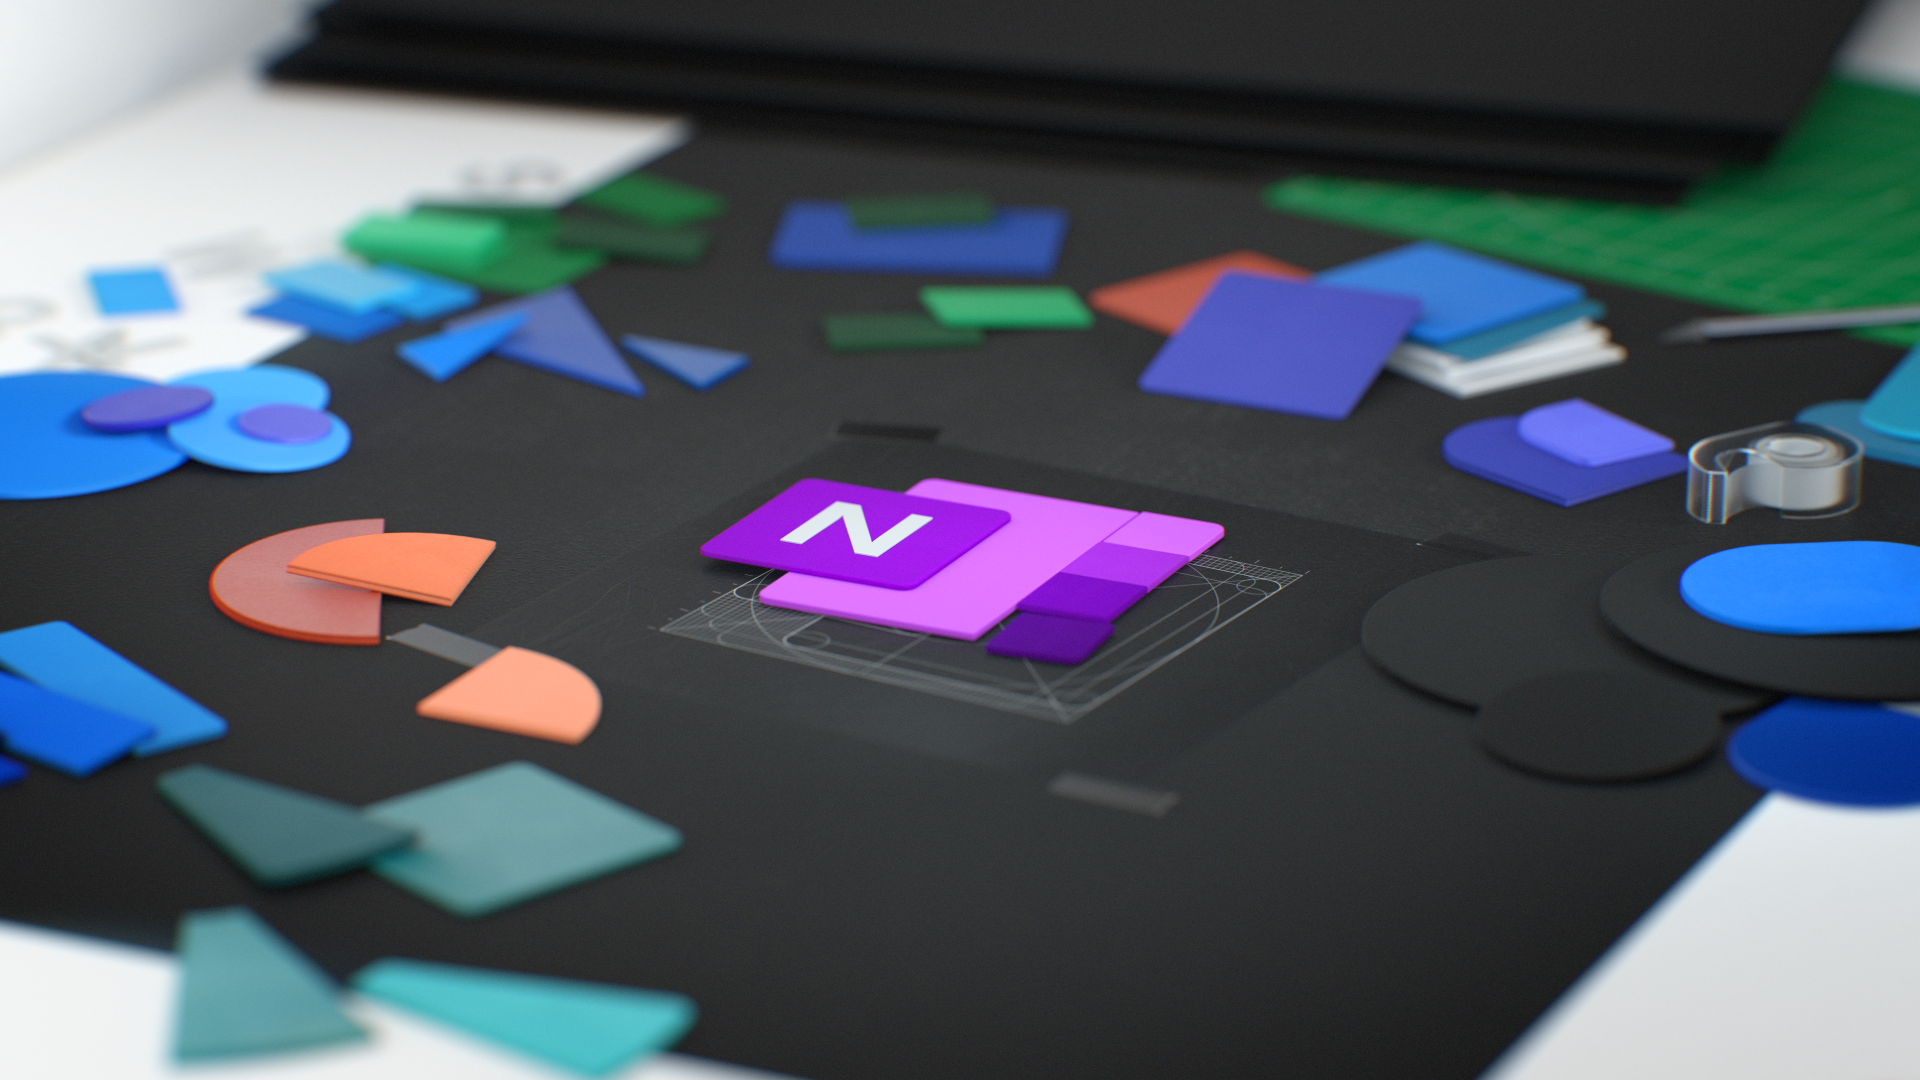 microsoft u2019s new office icons are part of a bigger design